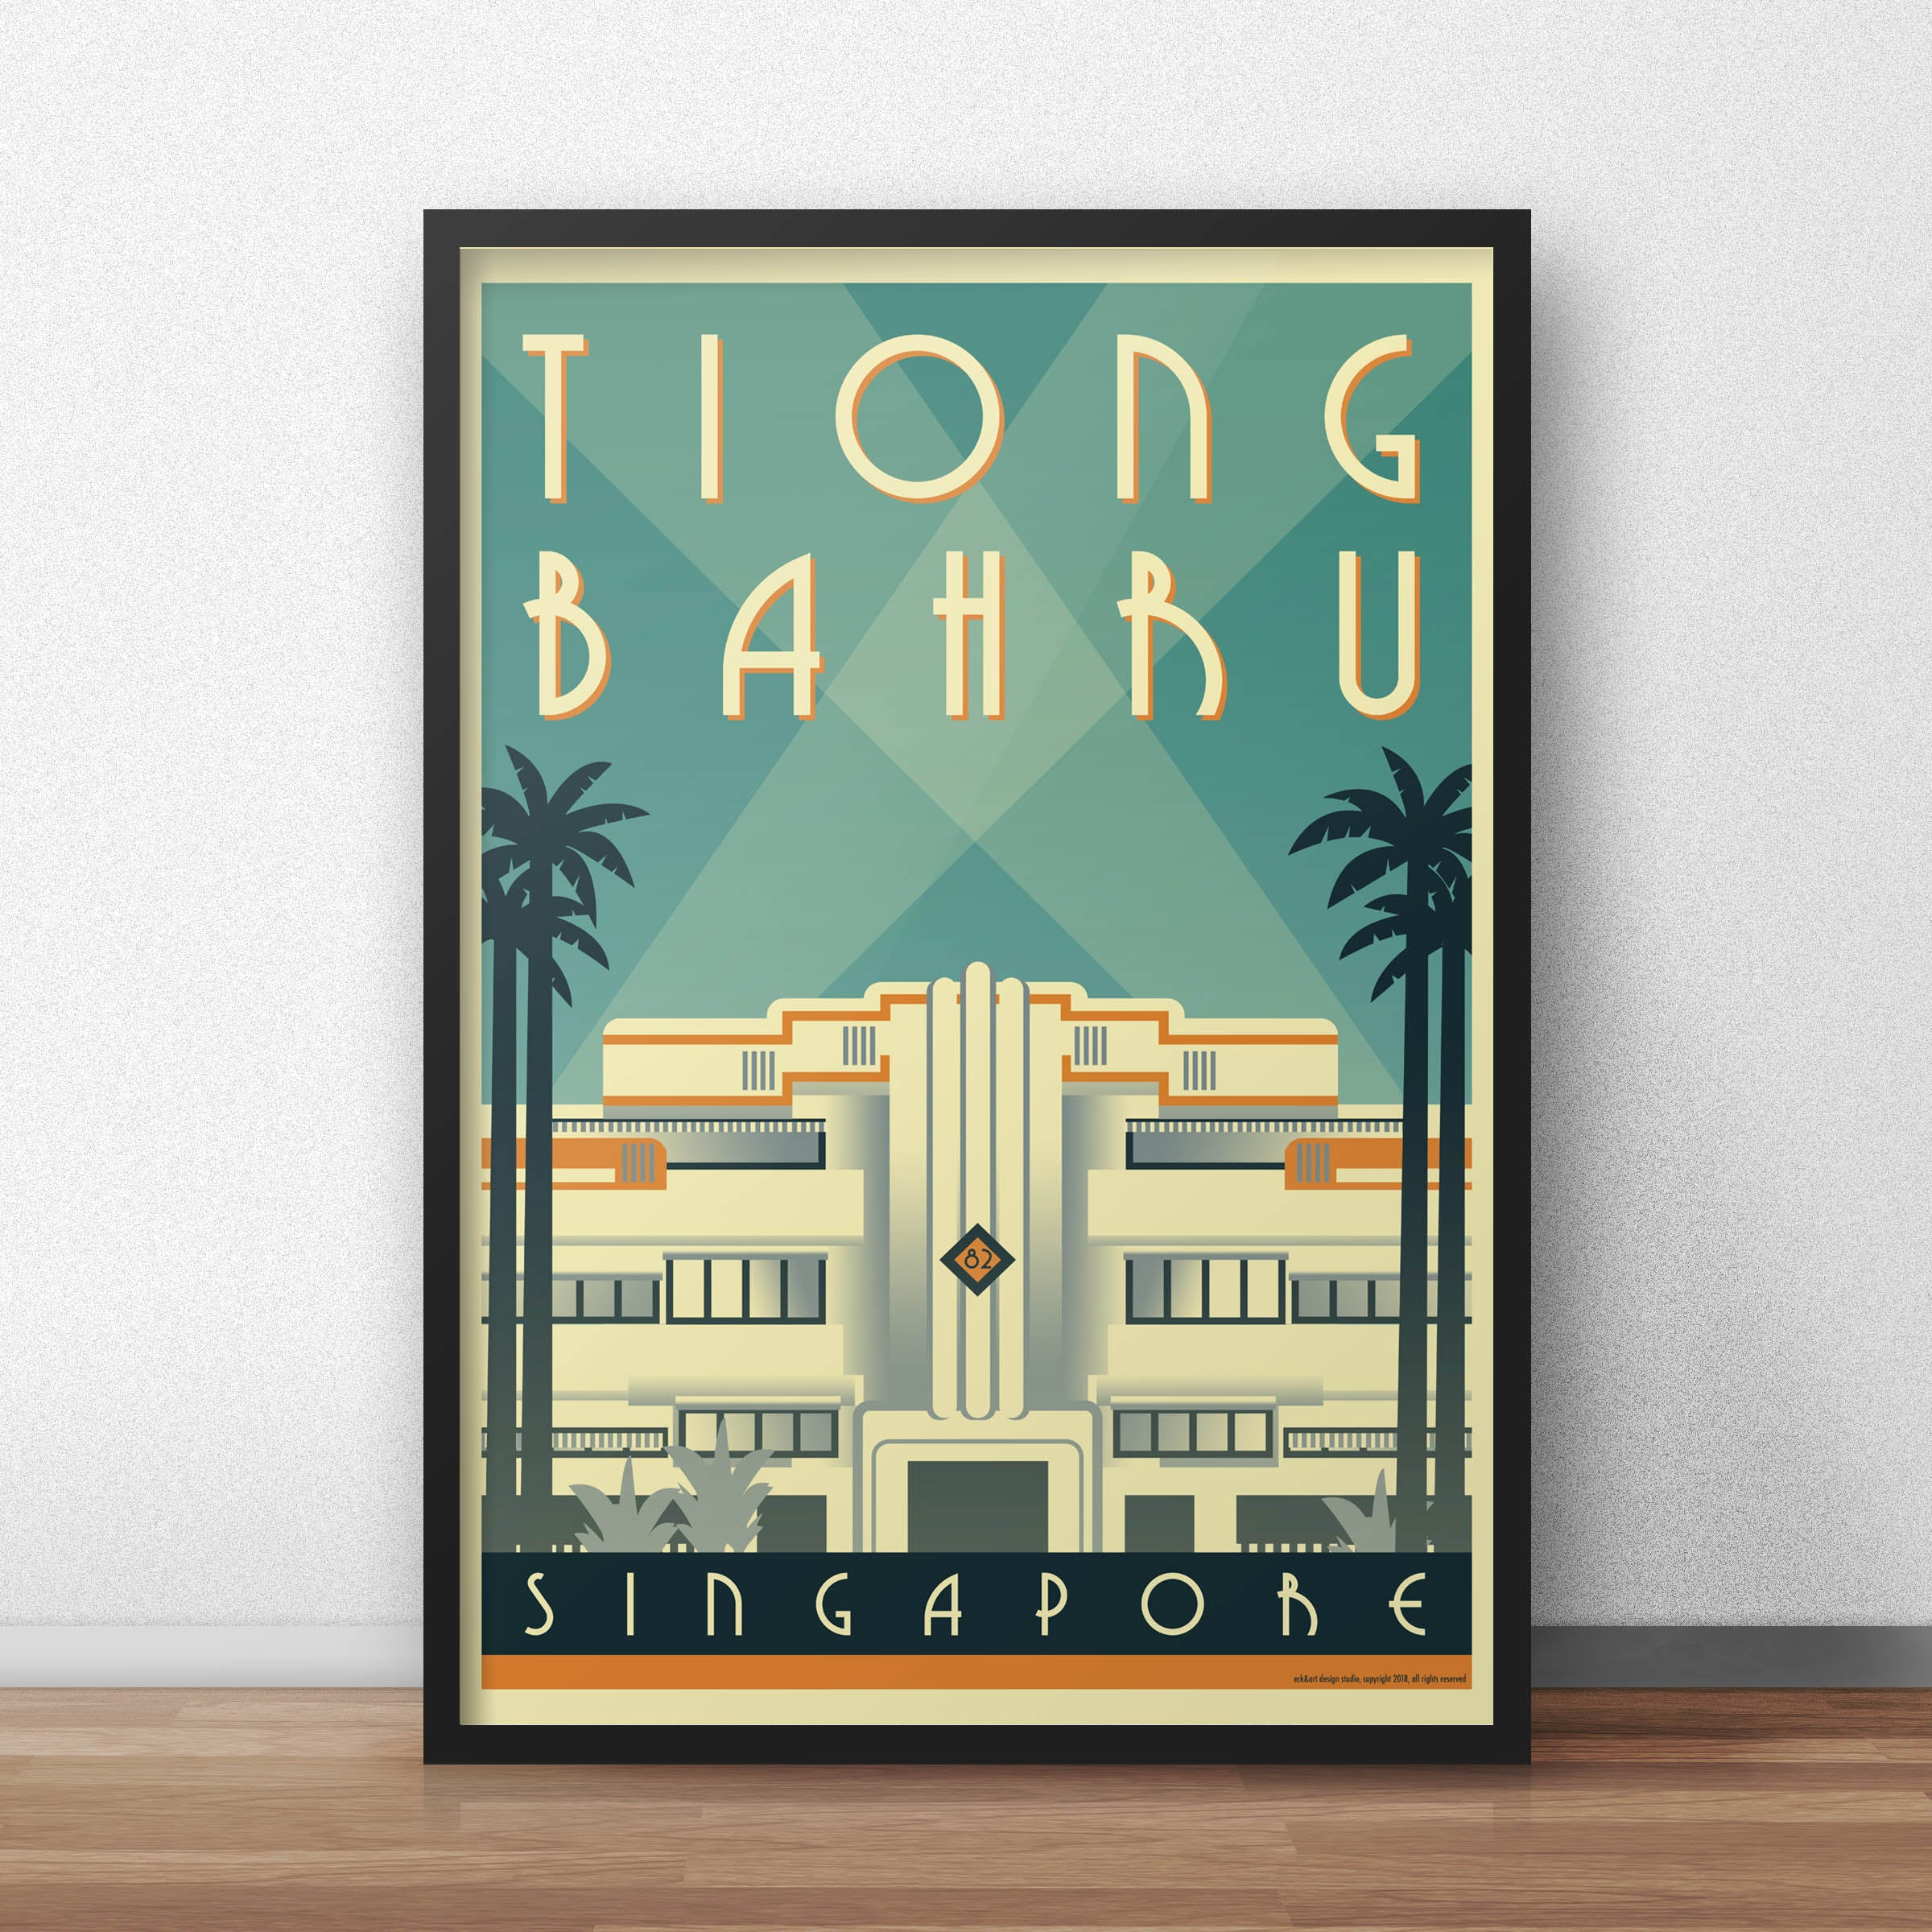 Deco Poster Tiong Bahru Art Deco Poster